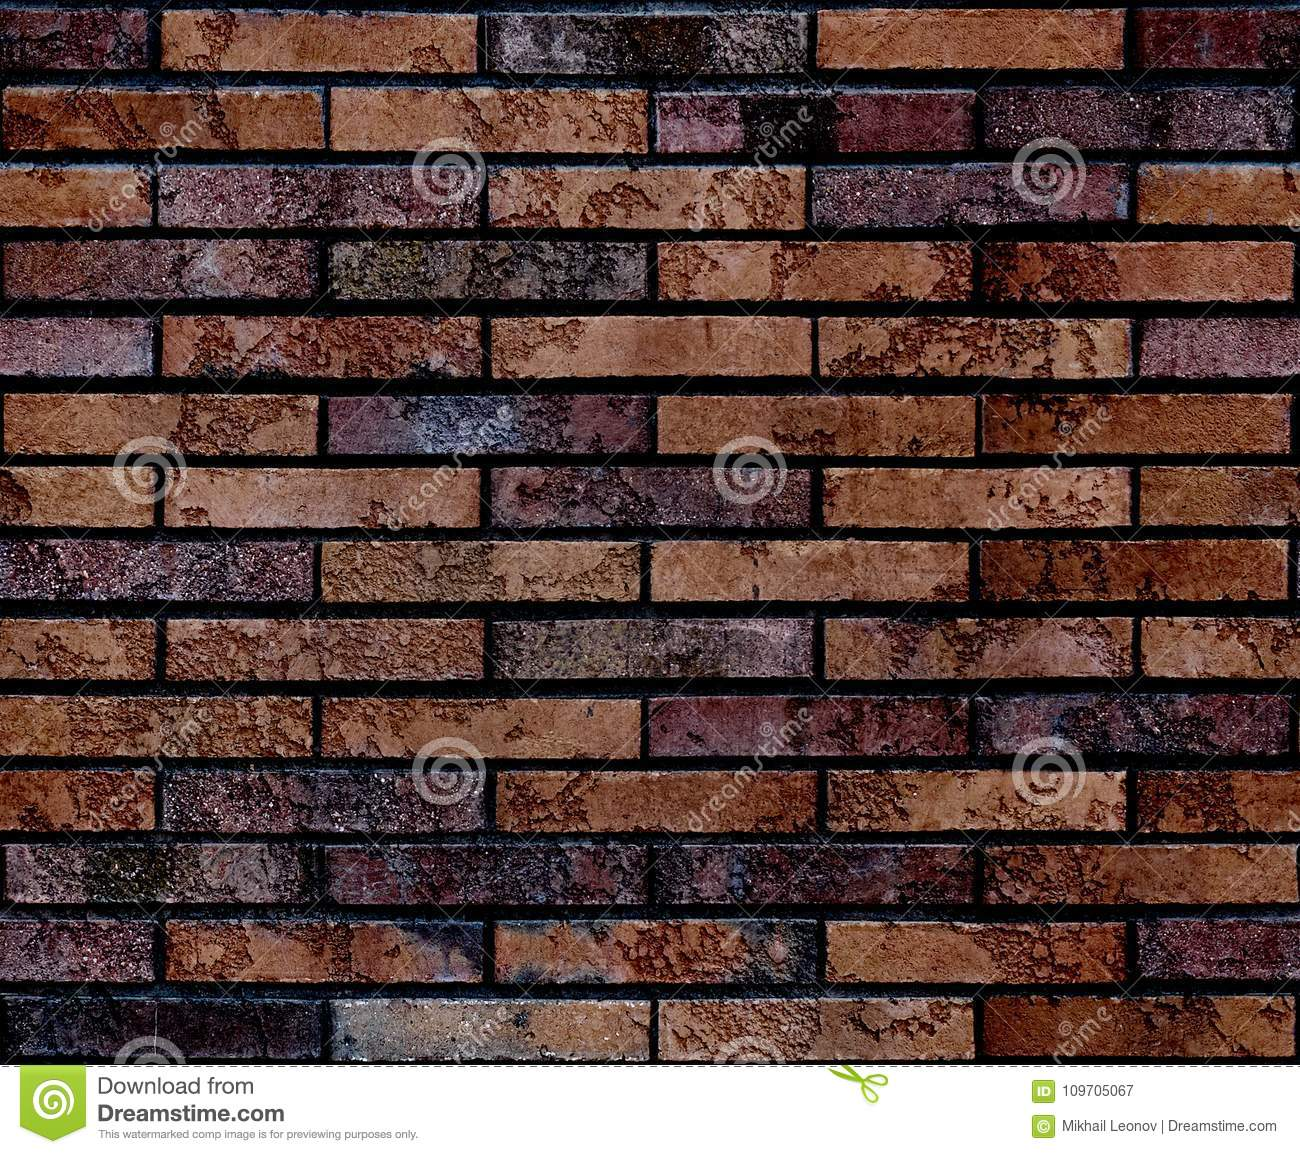 Seamless worn grunge brown brick wall pattern background texture. Seamless brick wall background. Architectural seamless brick pat